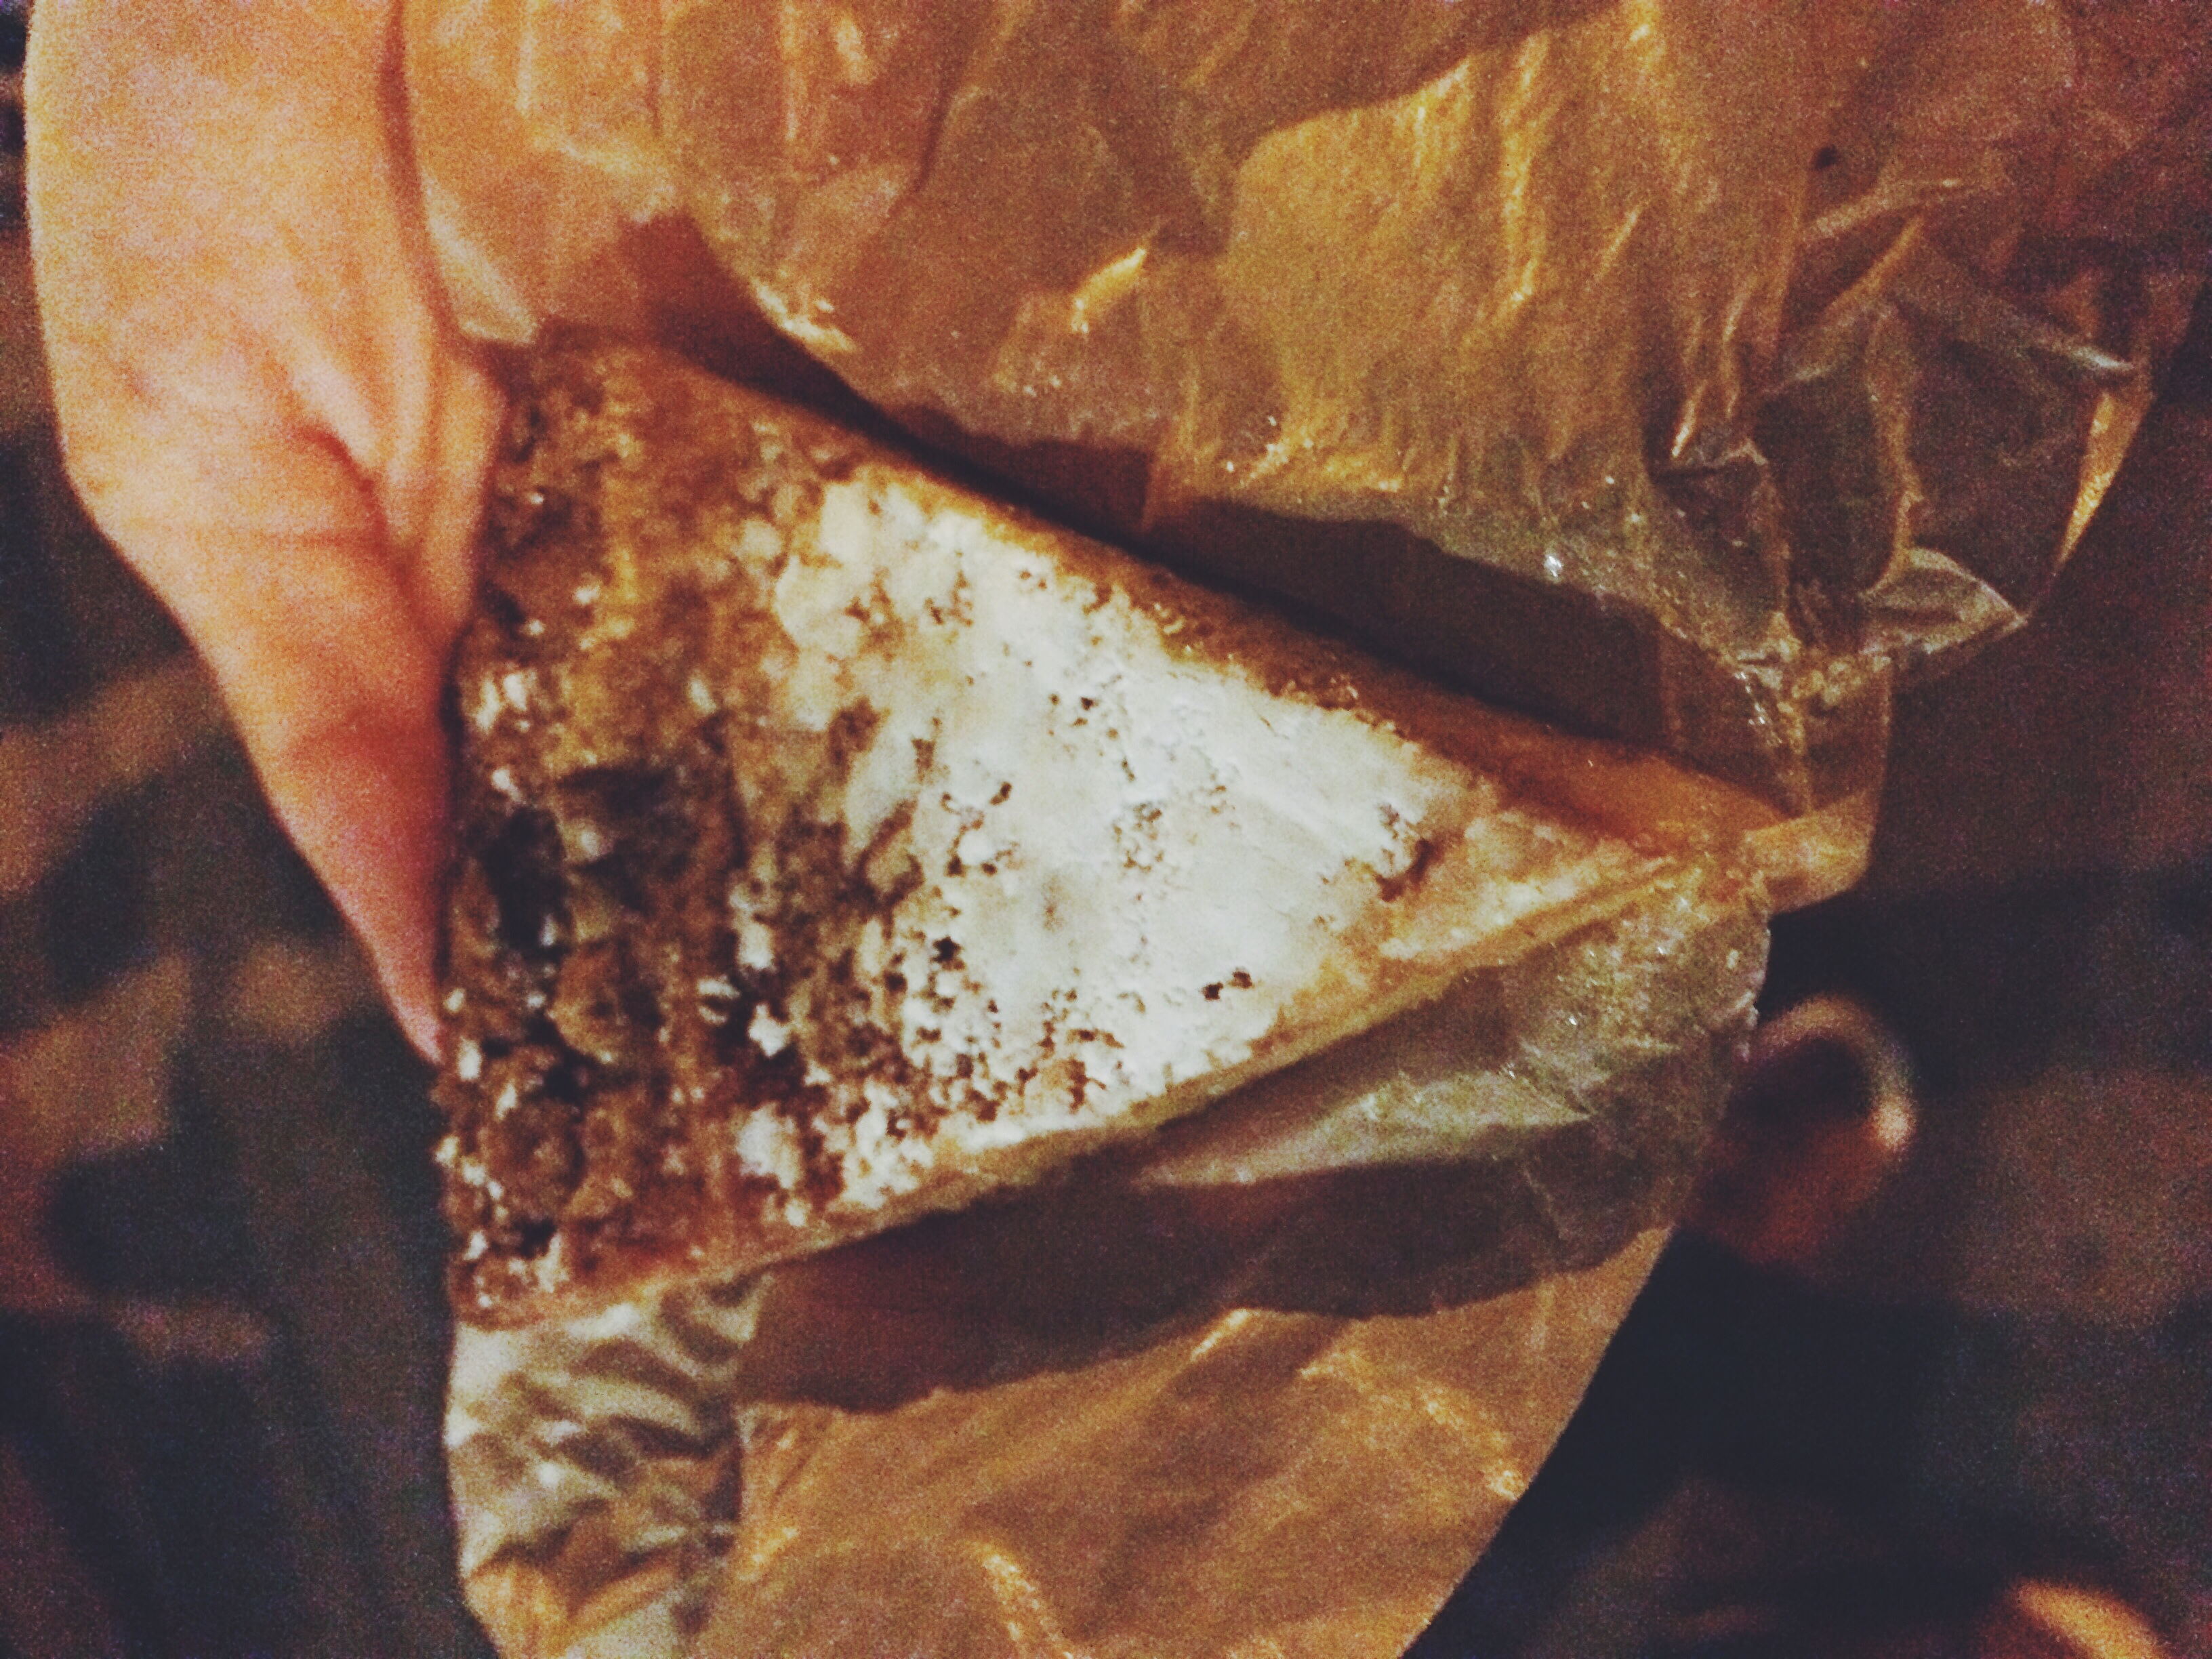 The crack pie | Photo: Celine Asril